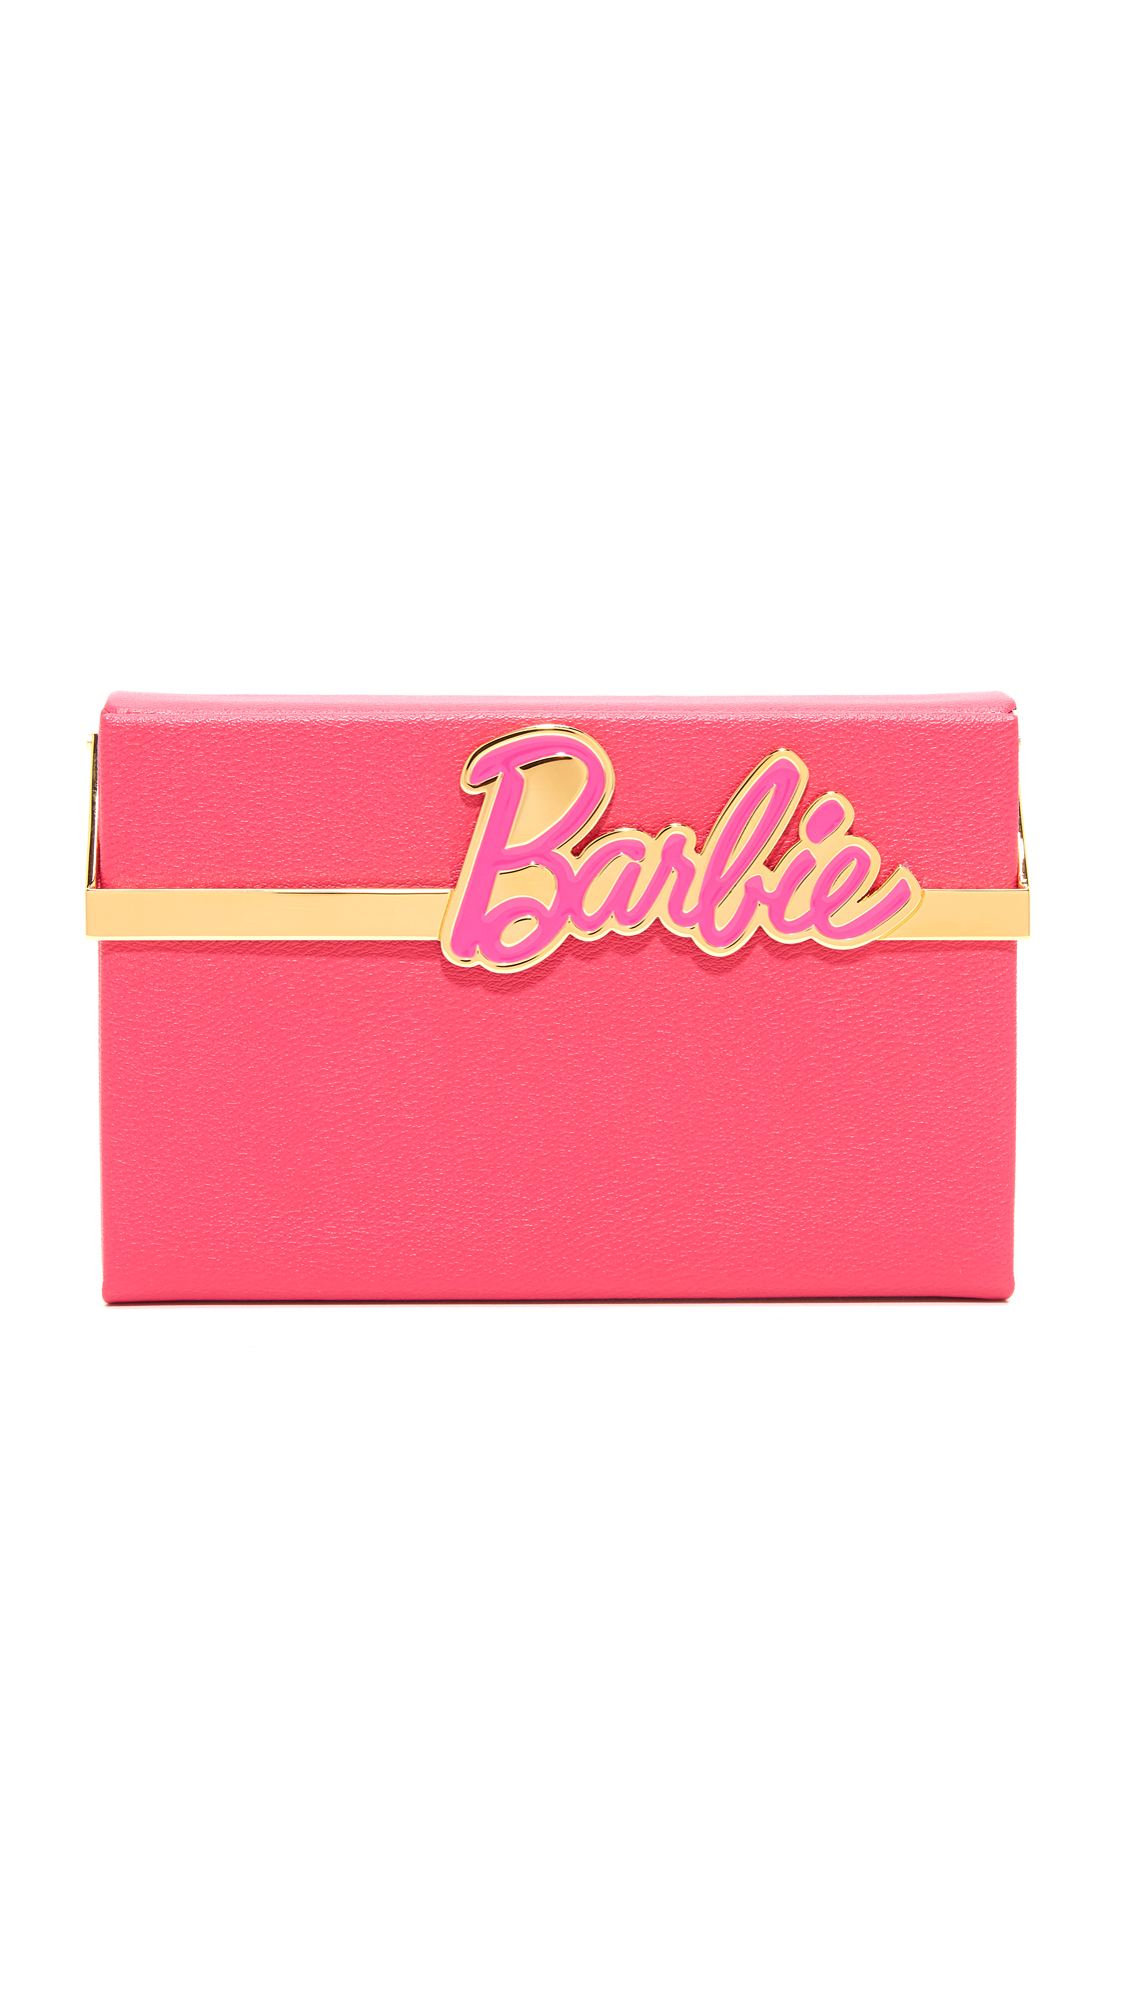 A hardshell Charlotte Olympia clutch in colorful leather. A hinged lock with 'Barbie' lettering secures the front flap. The leather lined interior has an inset vanity mirror. Dust bag included. Leather: Calfskin. Weight: 15oz / 0.43kg. Made